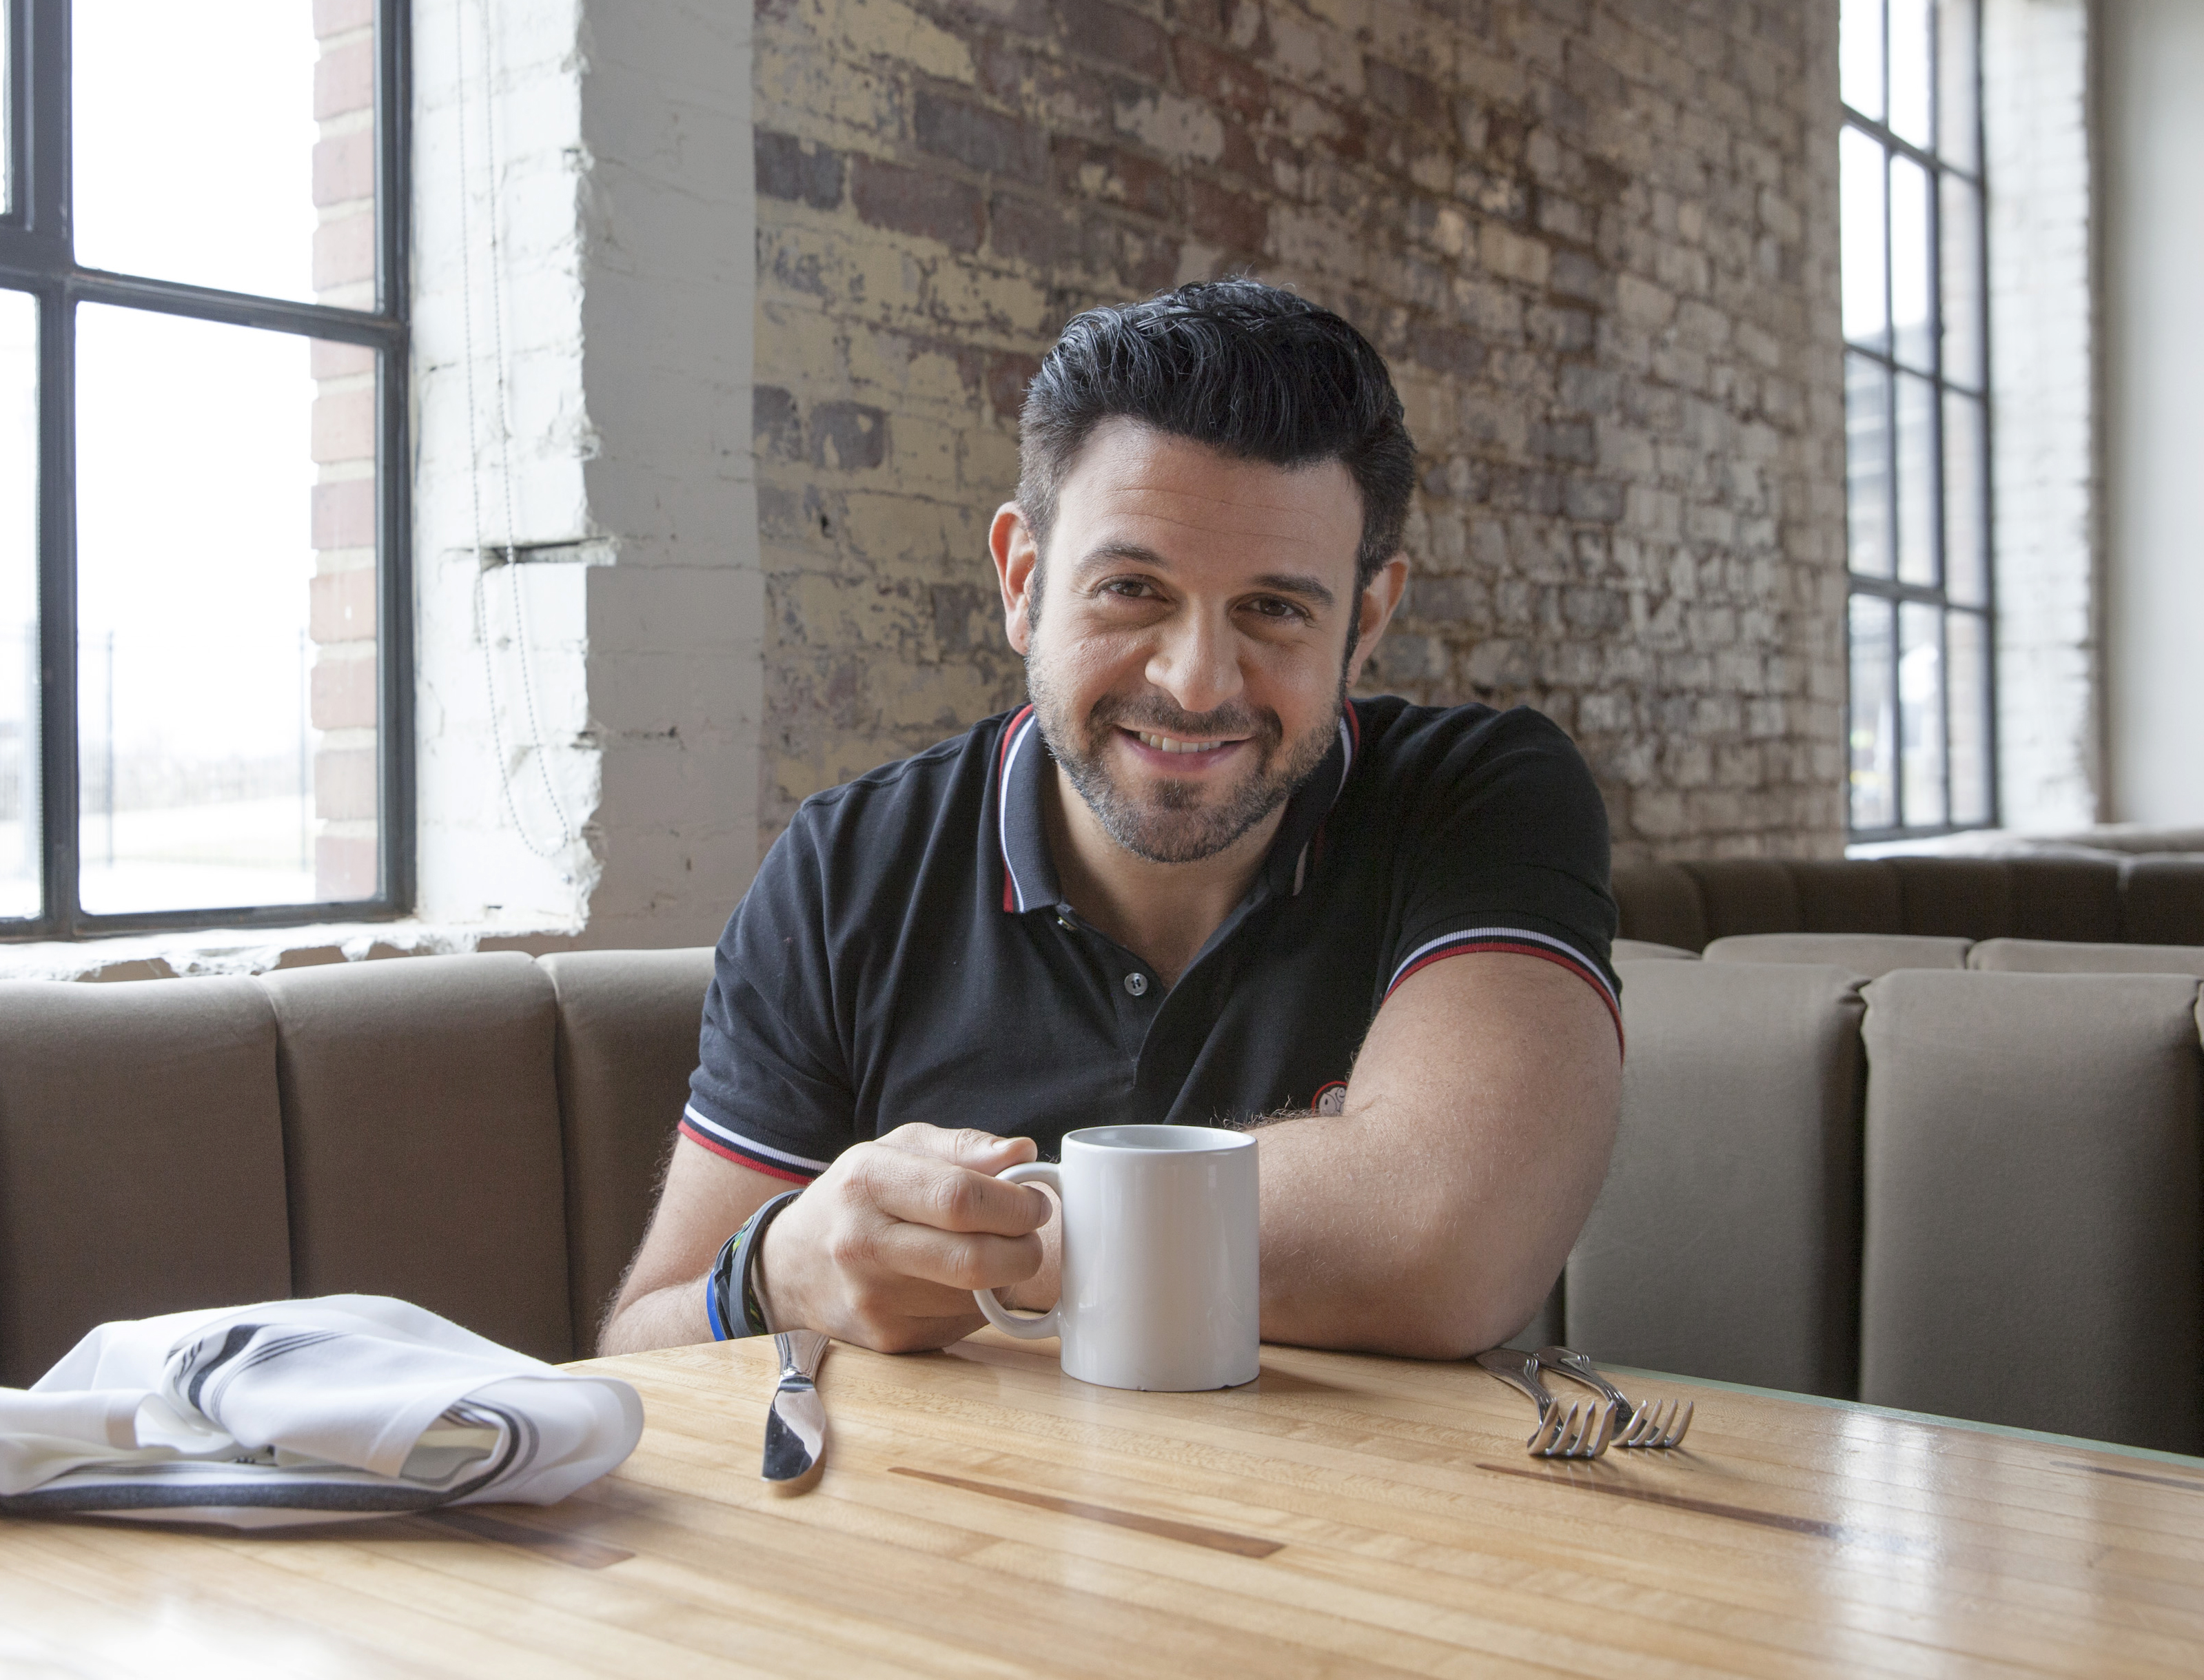 Matchday Menu: Adam Richman's New Show